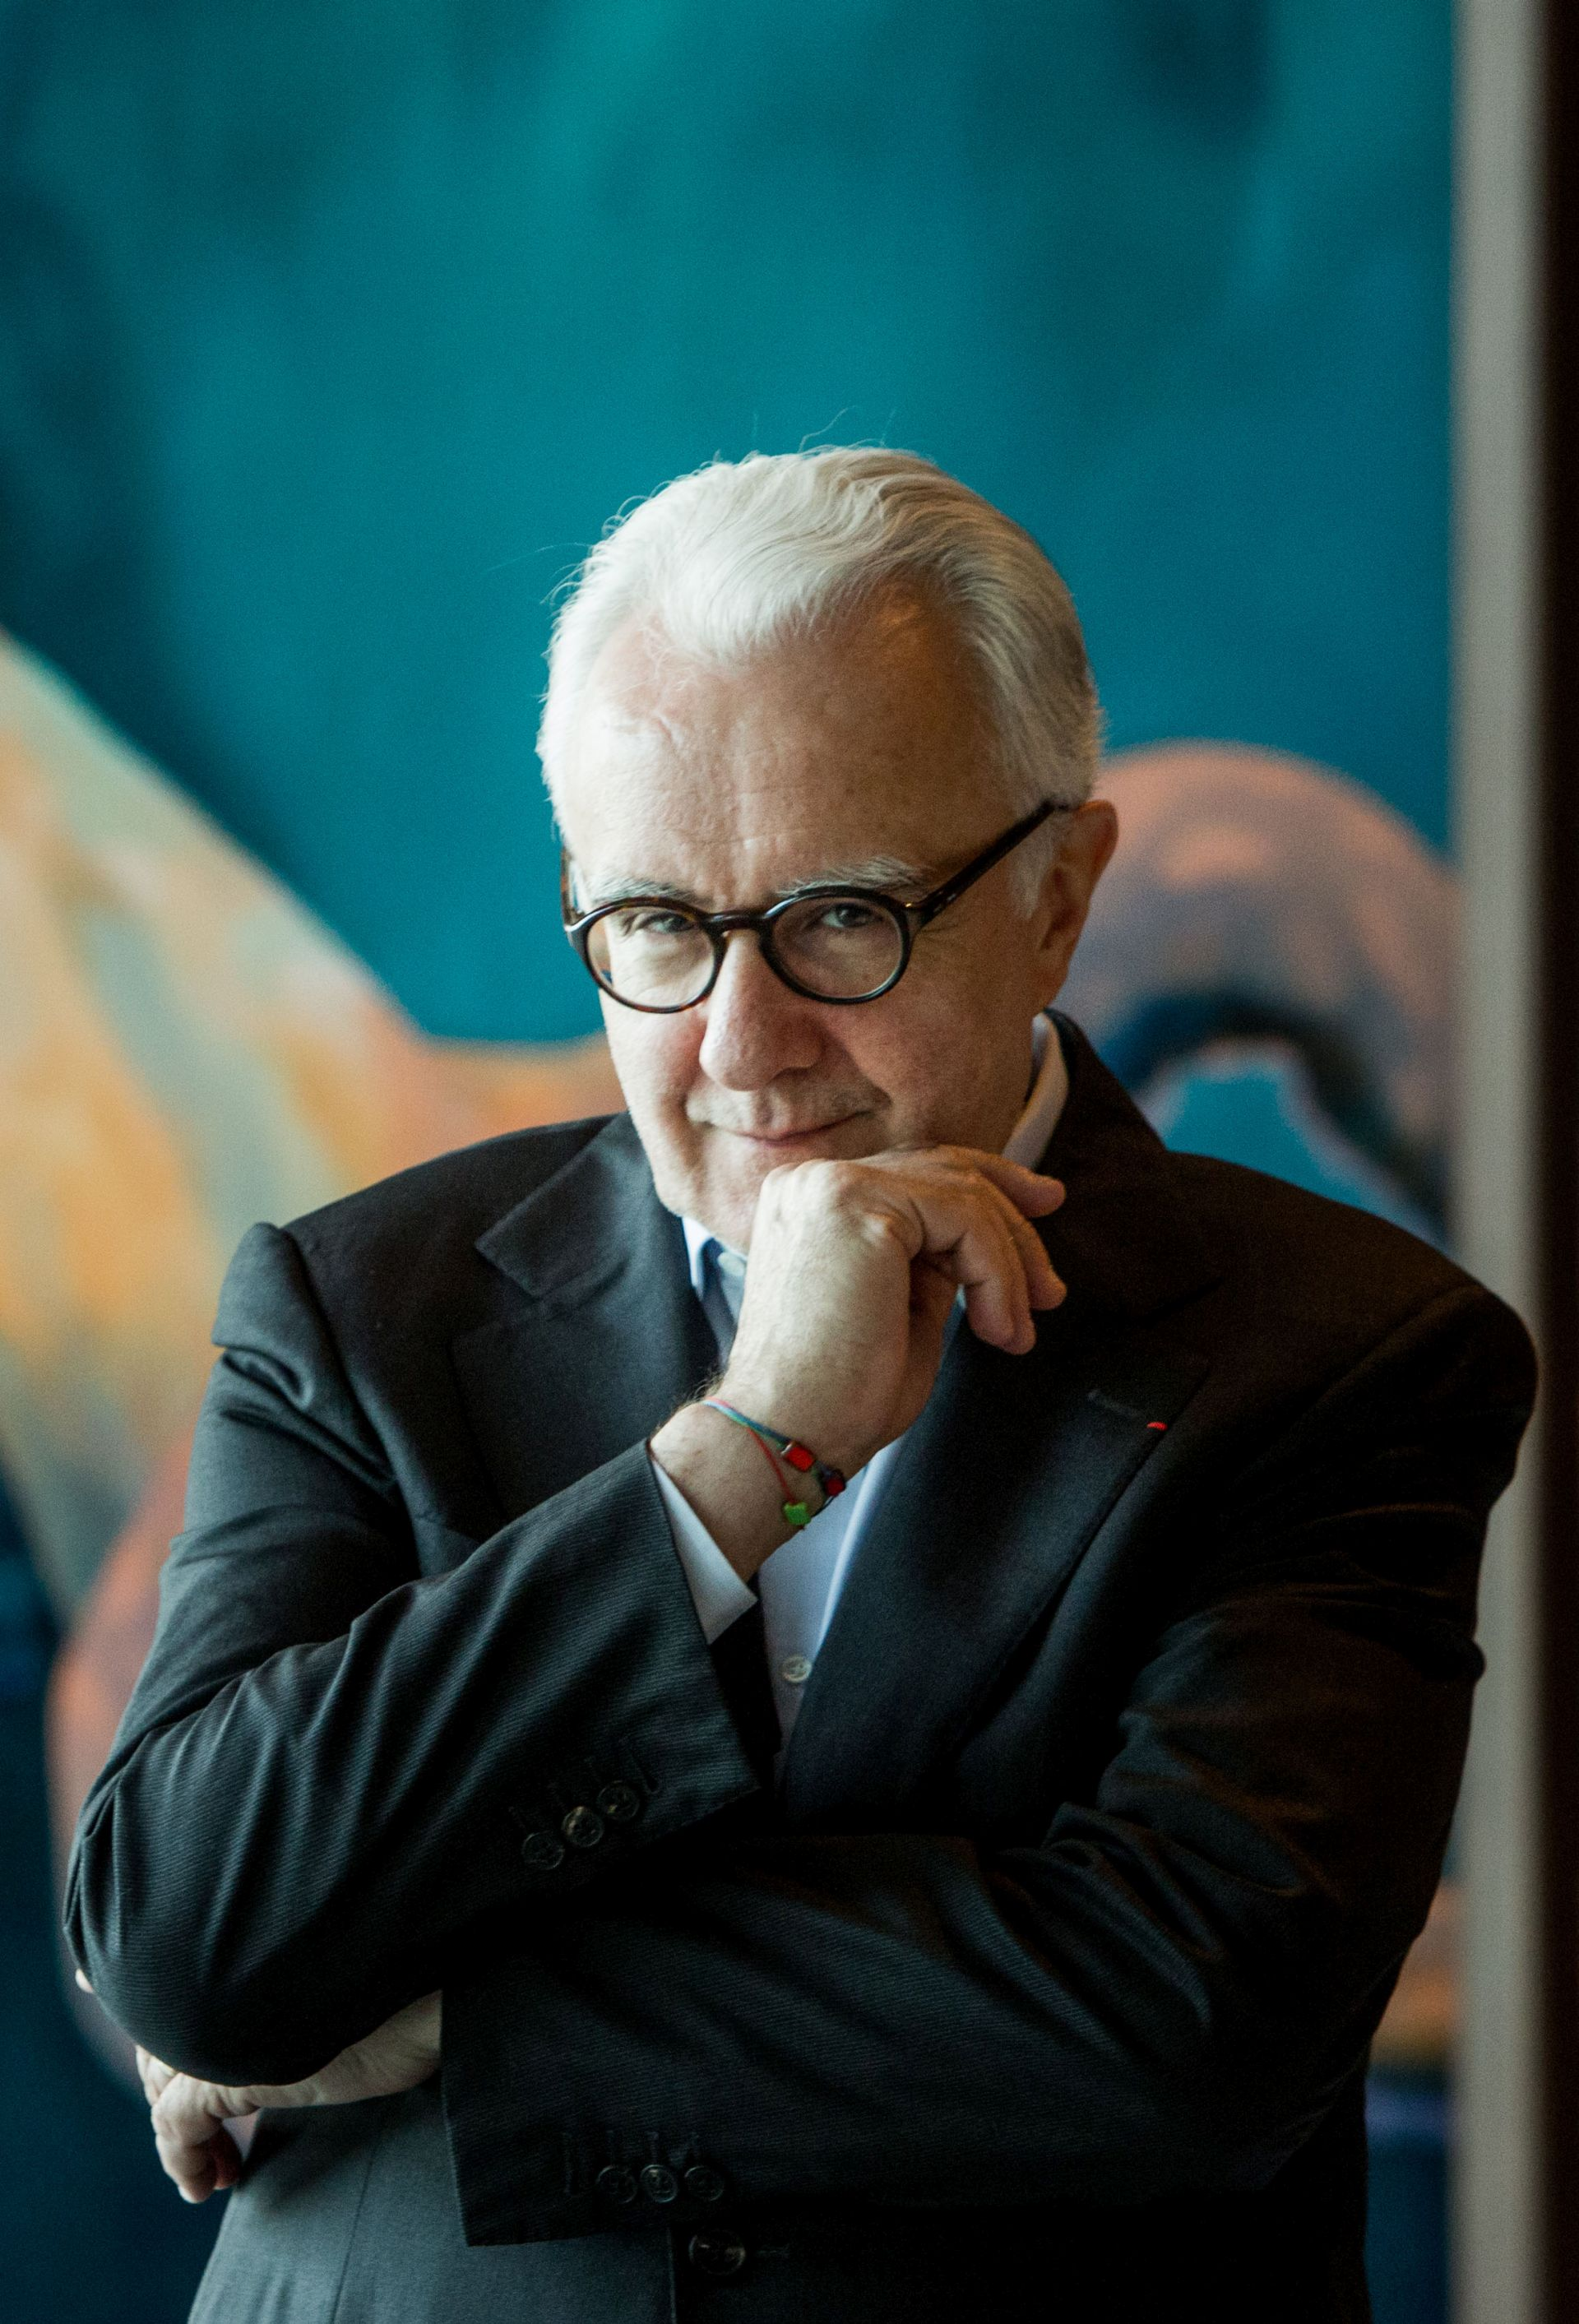 Chef Alain Ducasse Copyright Pierre Monetta